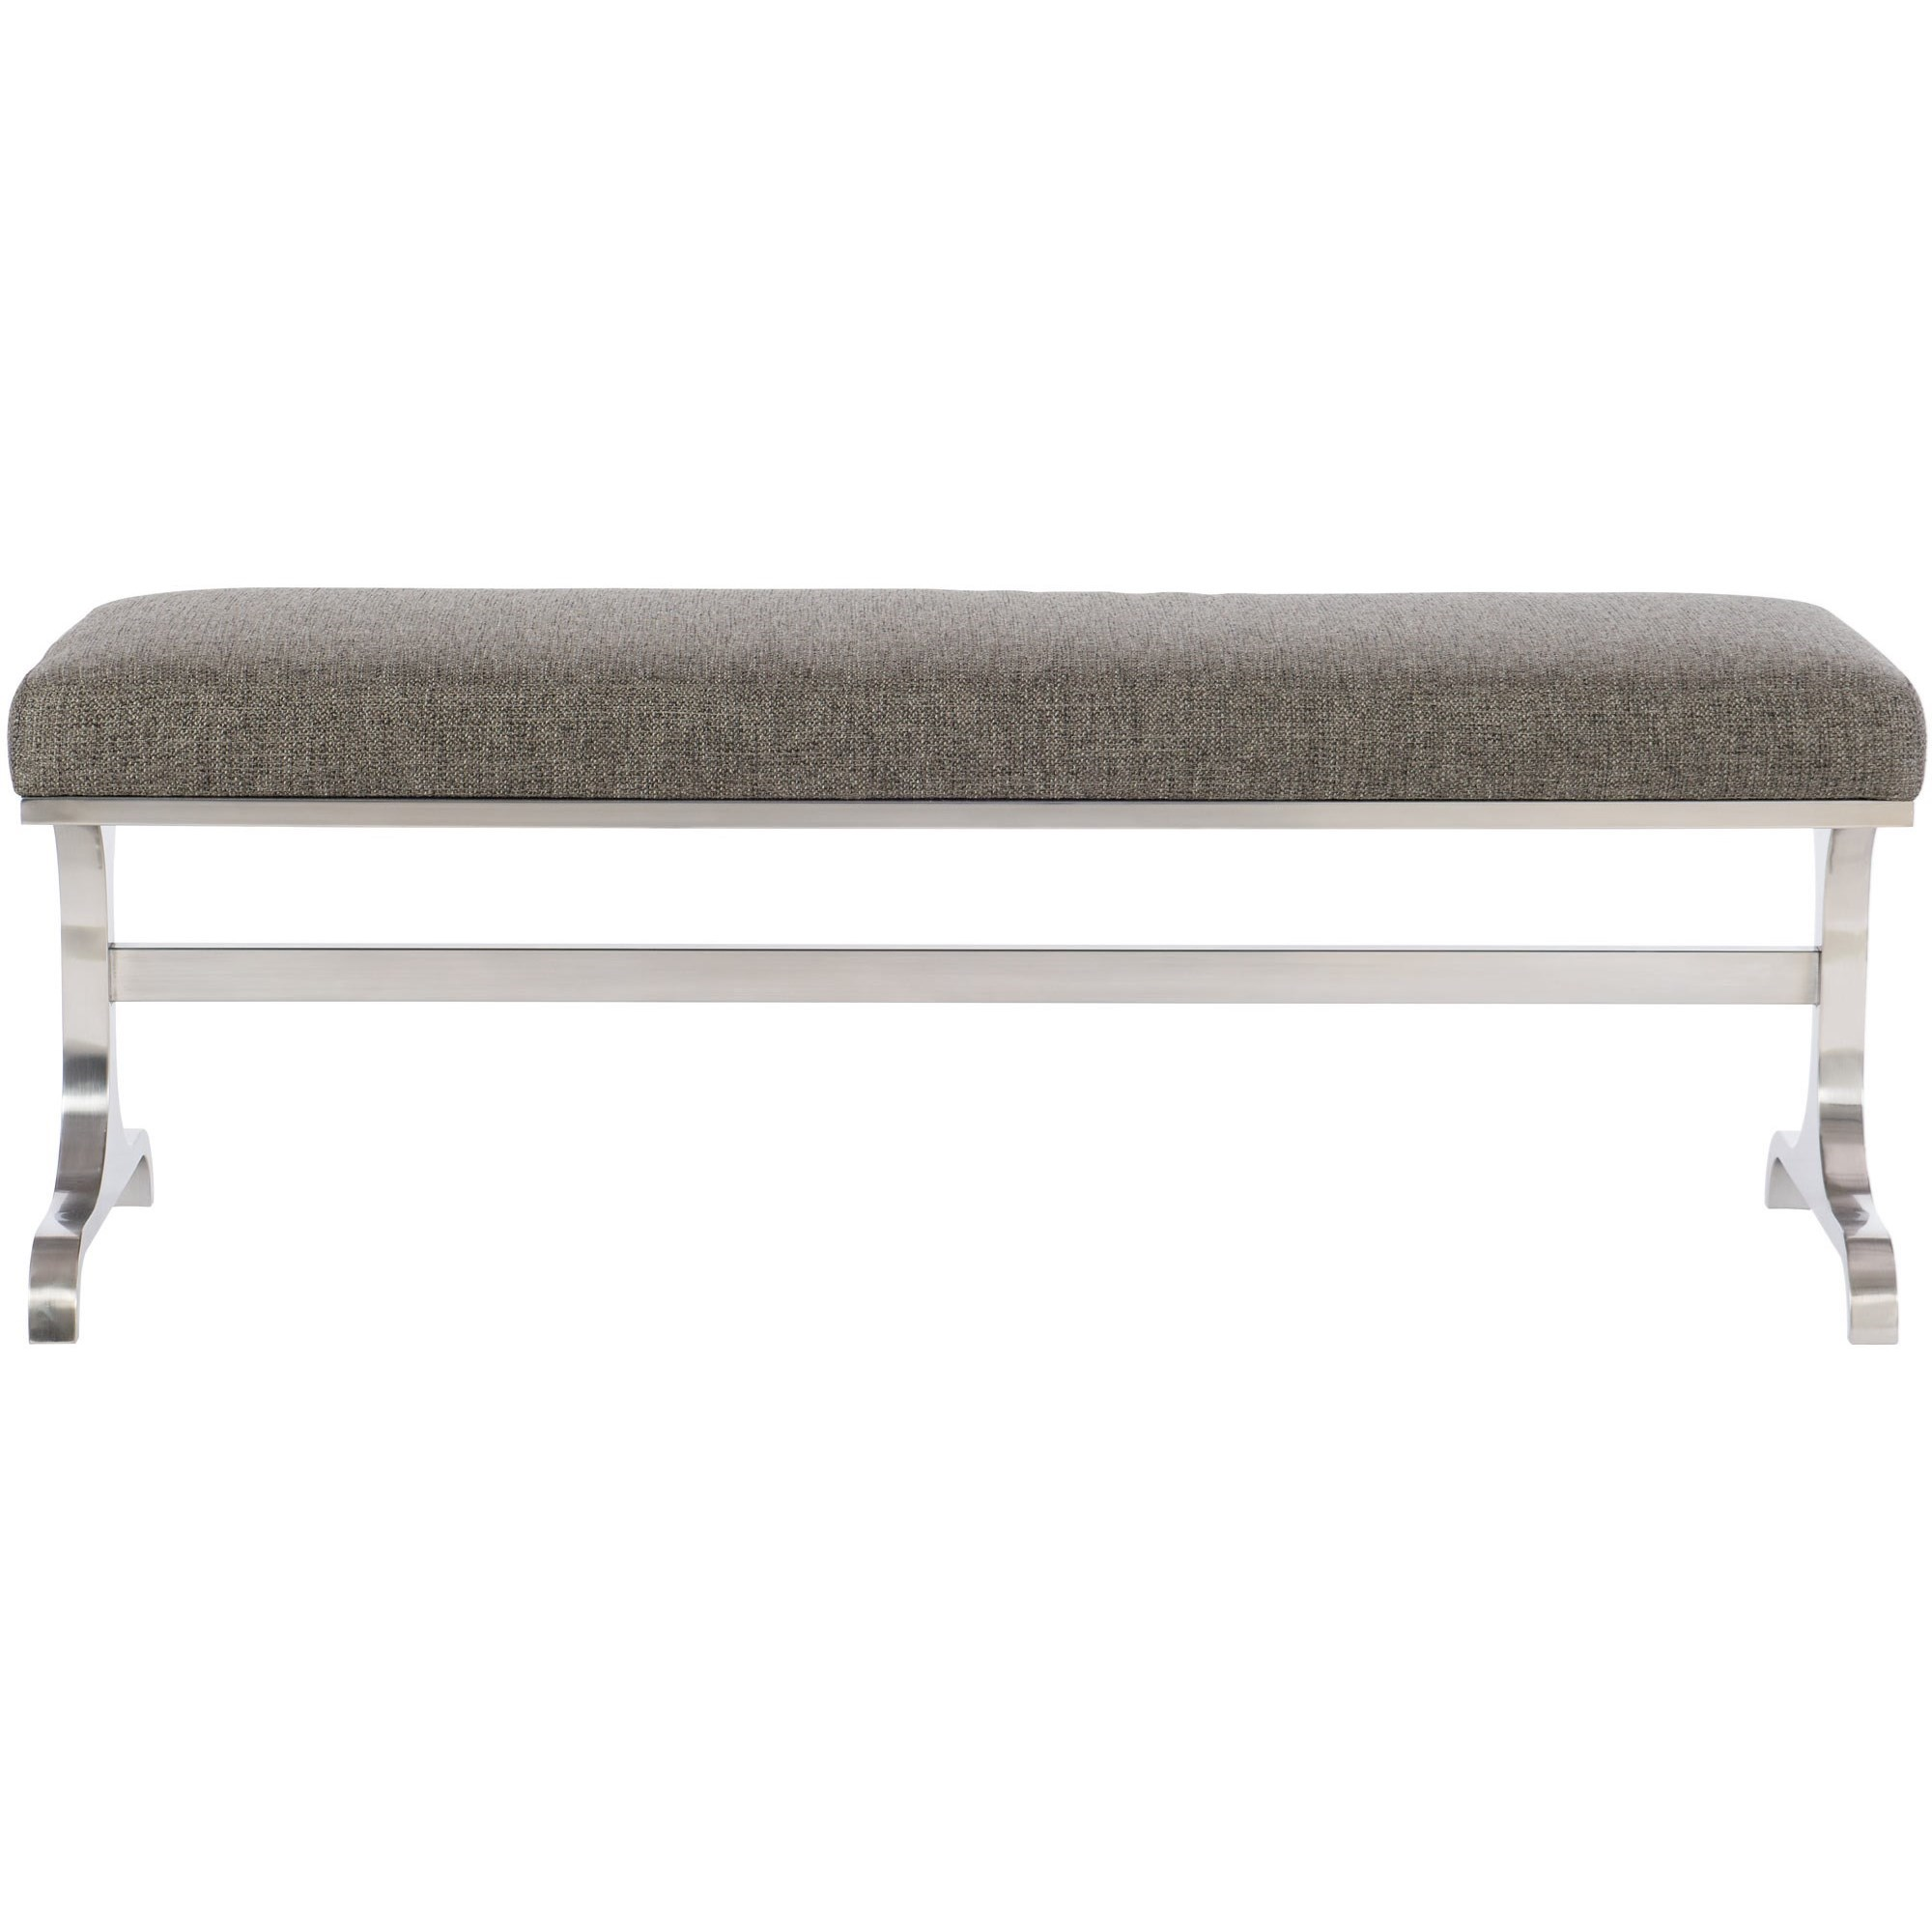 Decorage Bench by Bernhardt at Baer's Furniture